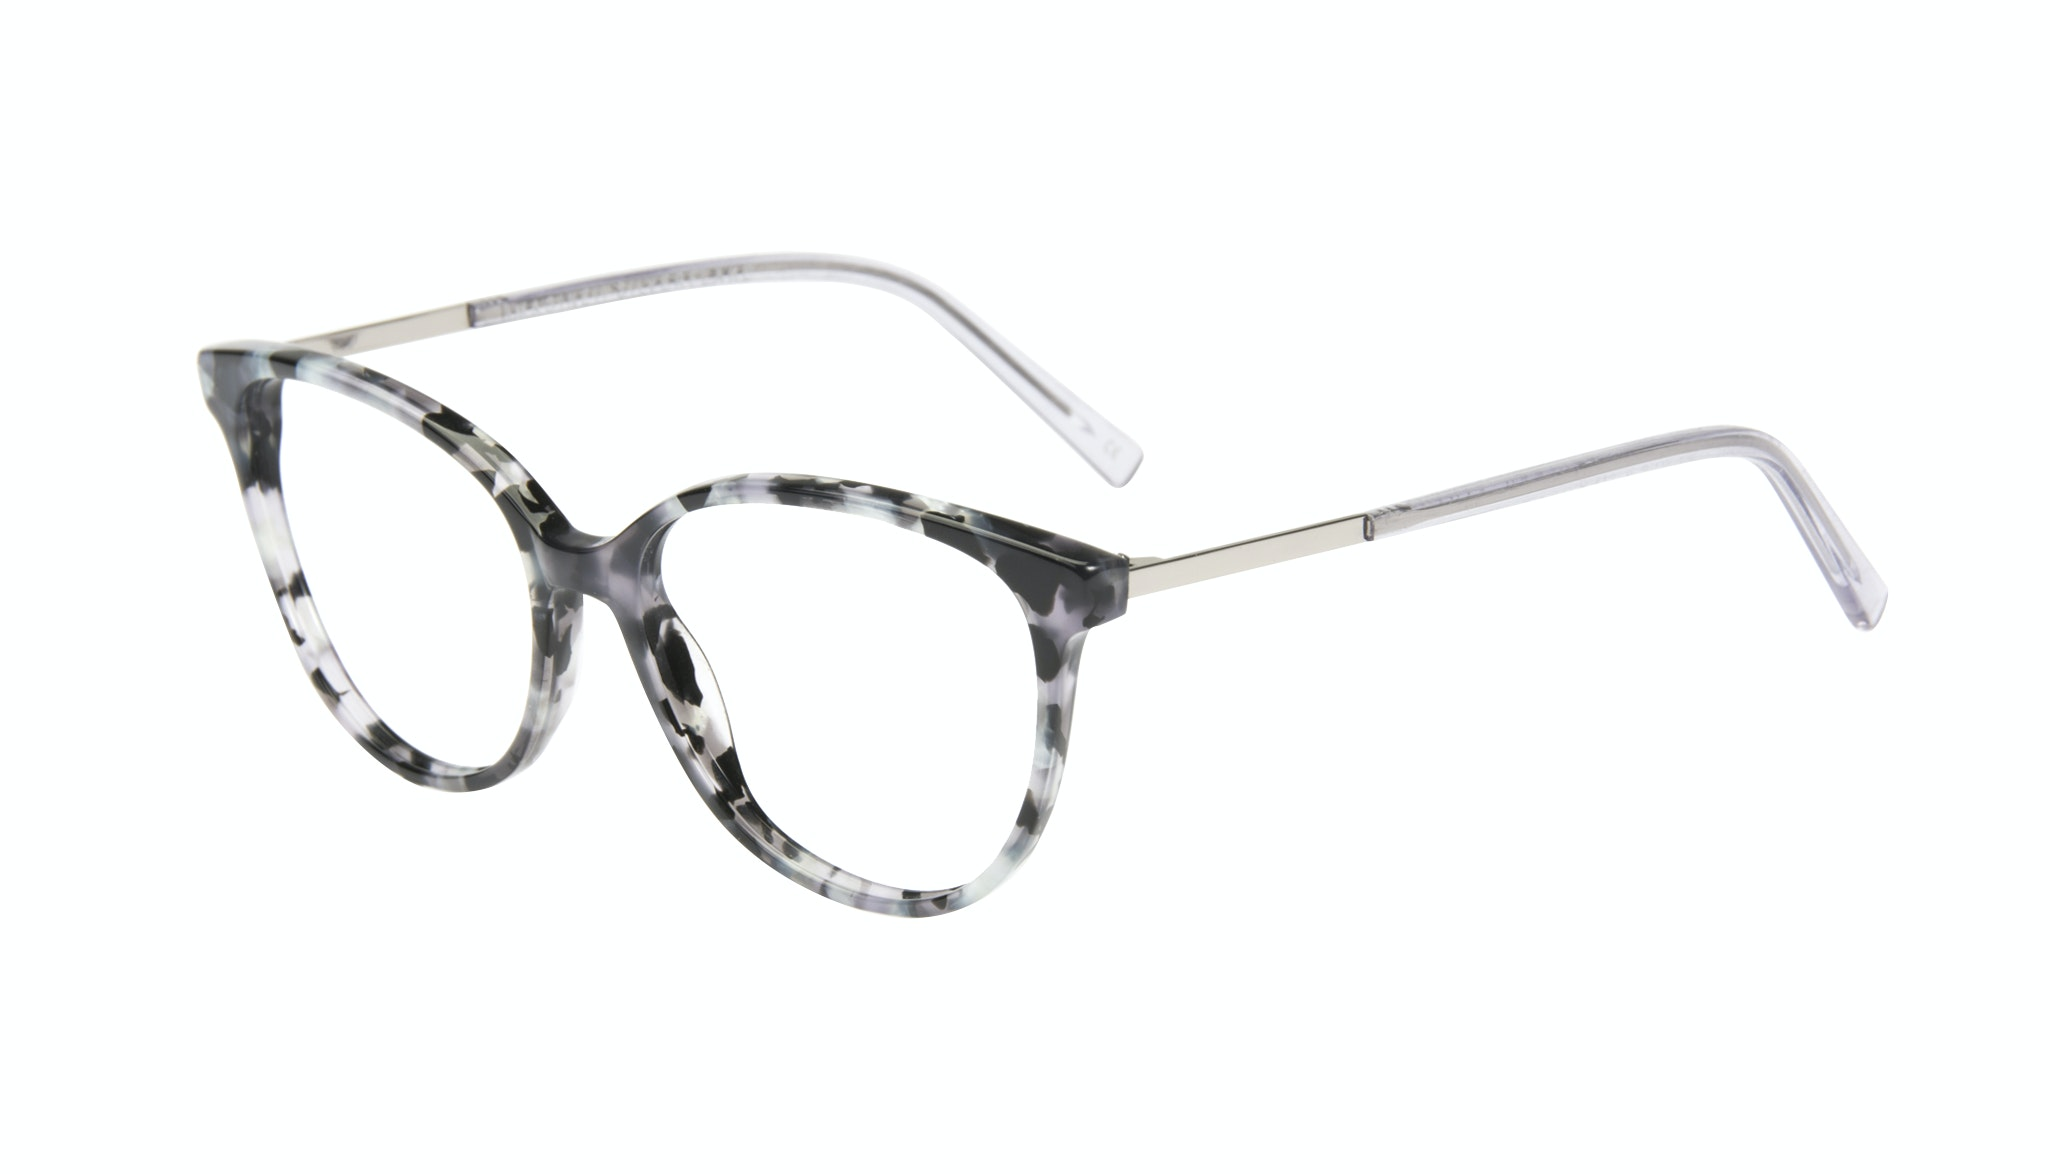 Affordable Fashion Glasses Cat Eye Eyeglasses Women Imagine II silver flake Tilt